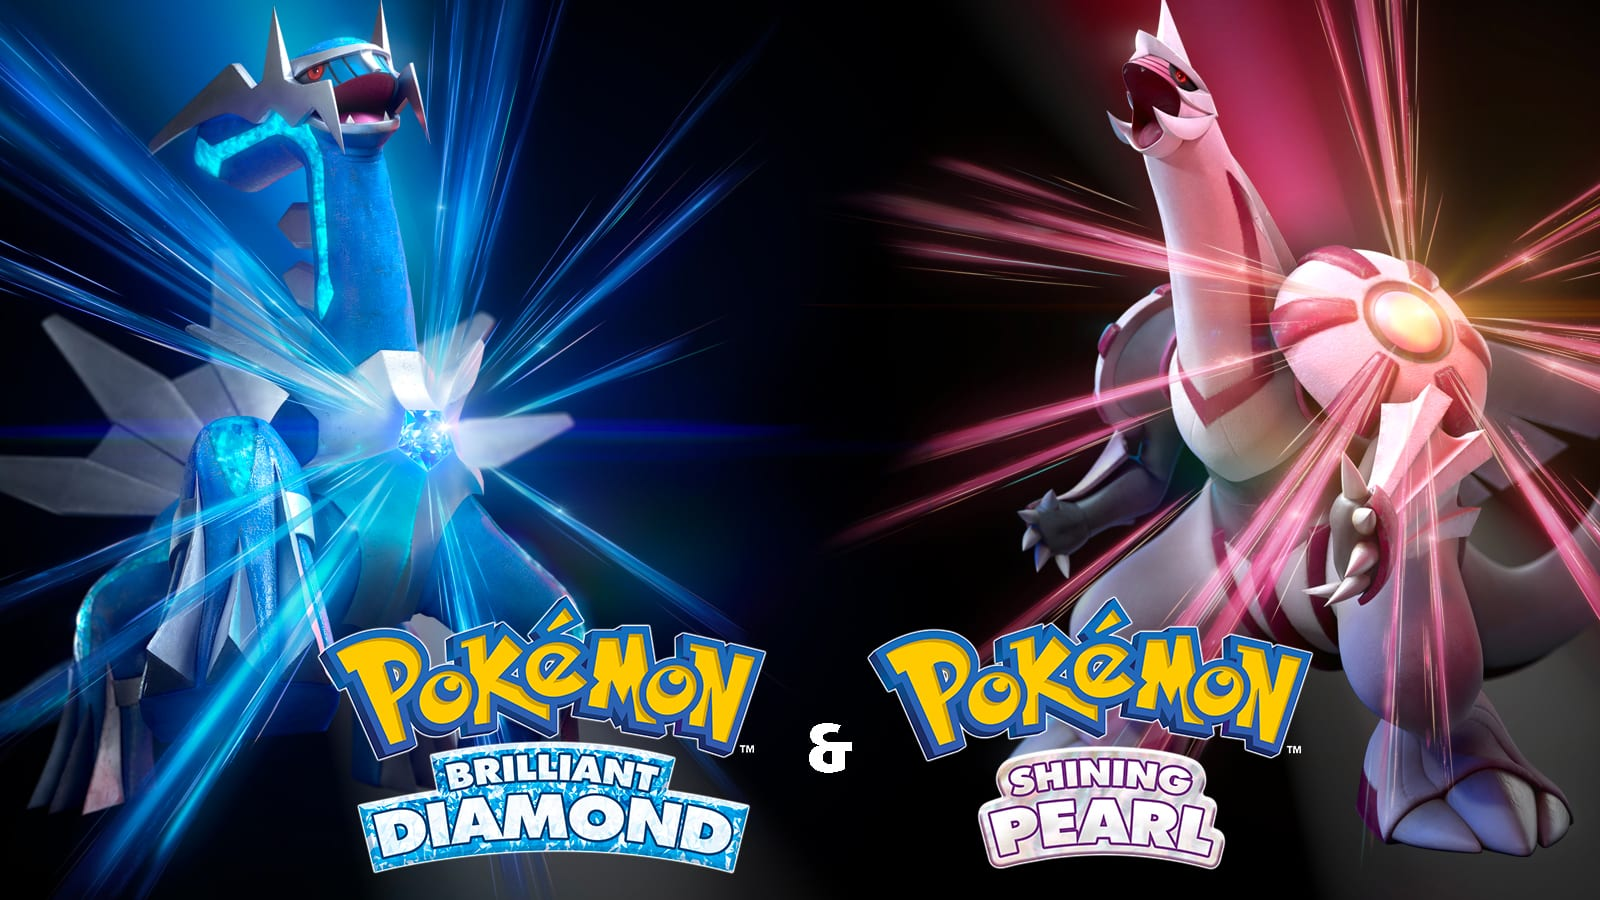 Pokemon-Brilliant-Diamond-Shining-Pearl-exclusives-Differences-between-them